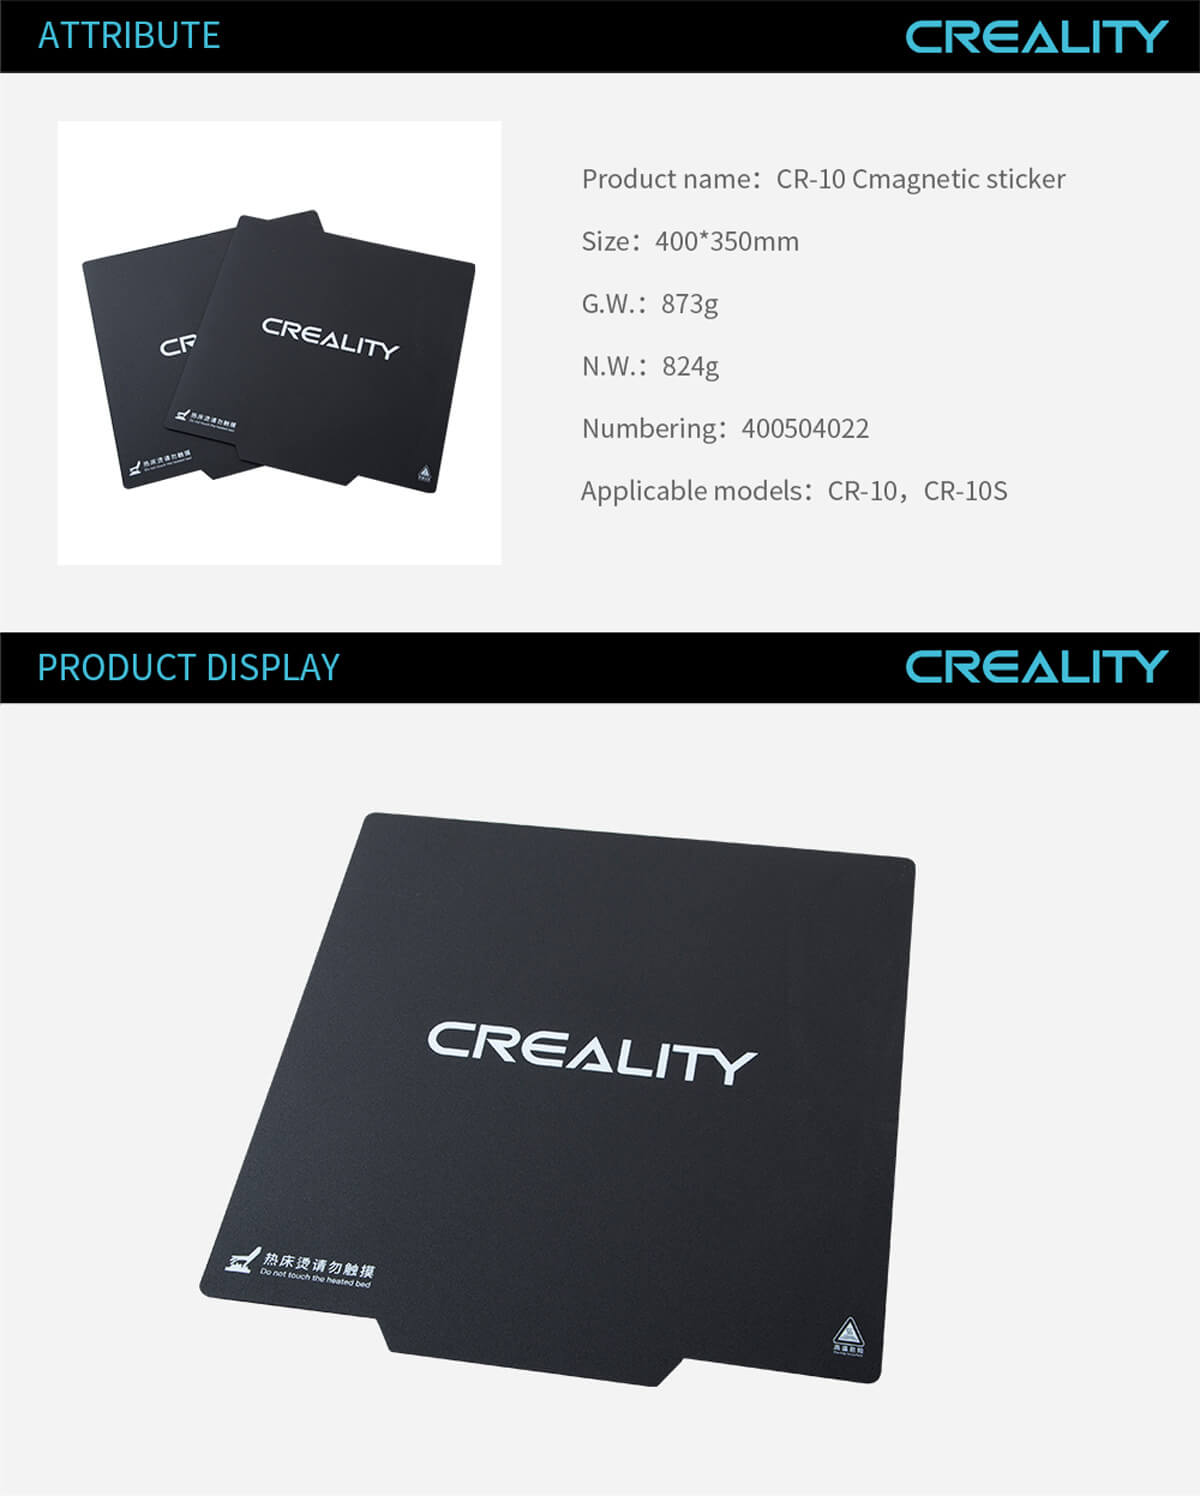 creality-3d-printer-CR-10-Cmagnetic-Sticker-11